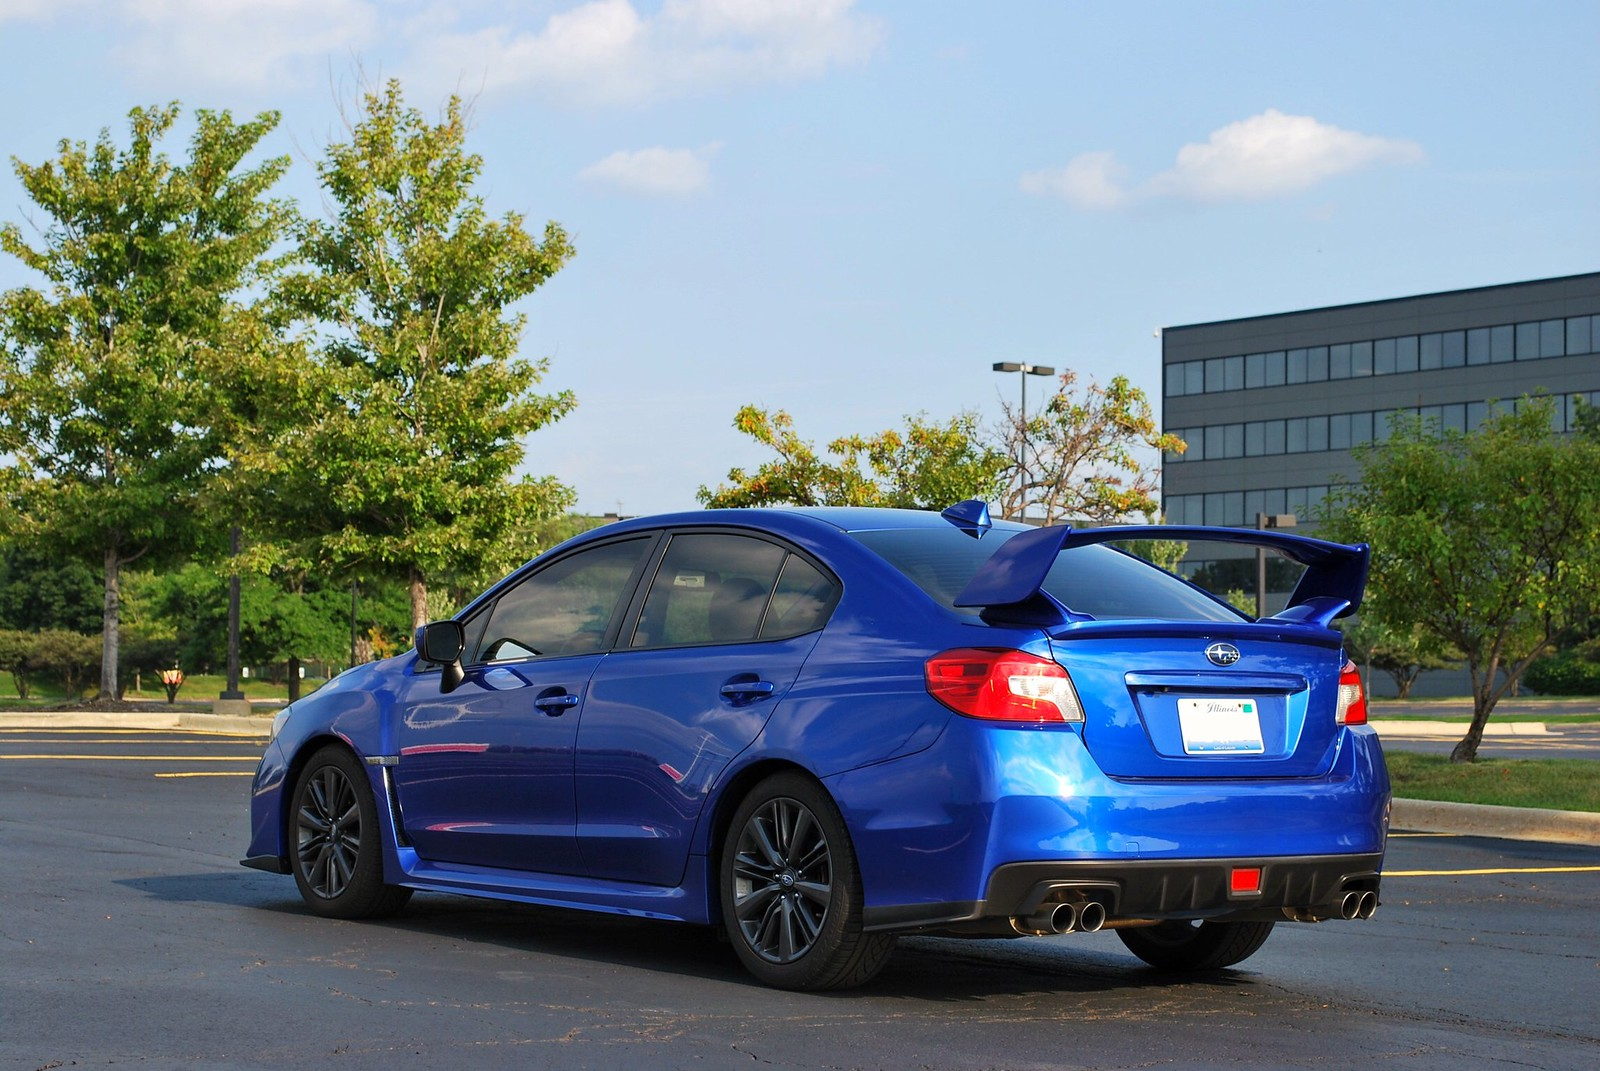 sti wing with wrx lip spoiler nasioc sti wing with wrx lip spoiler nasioc